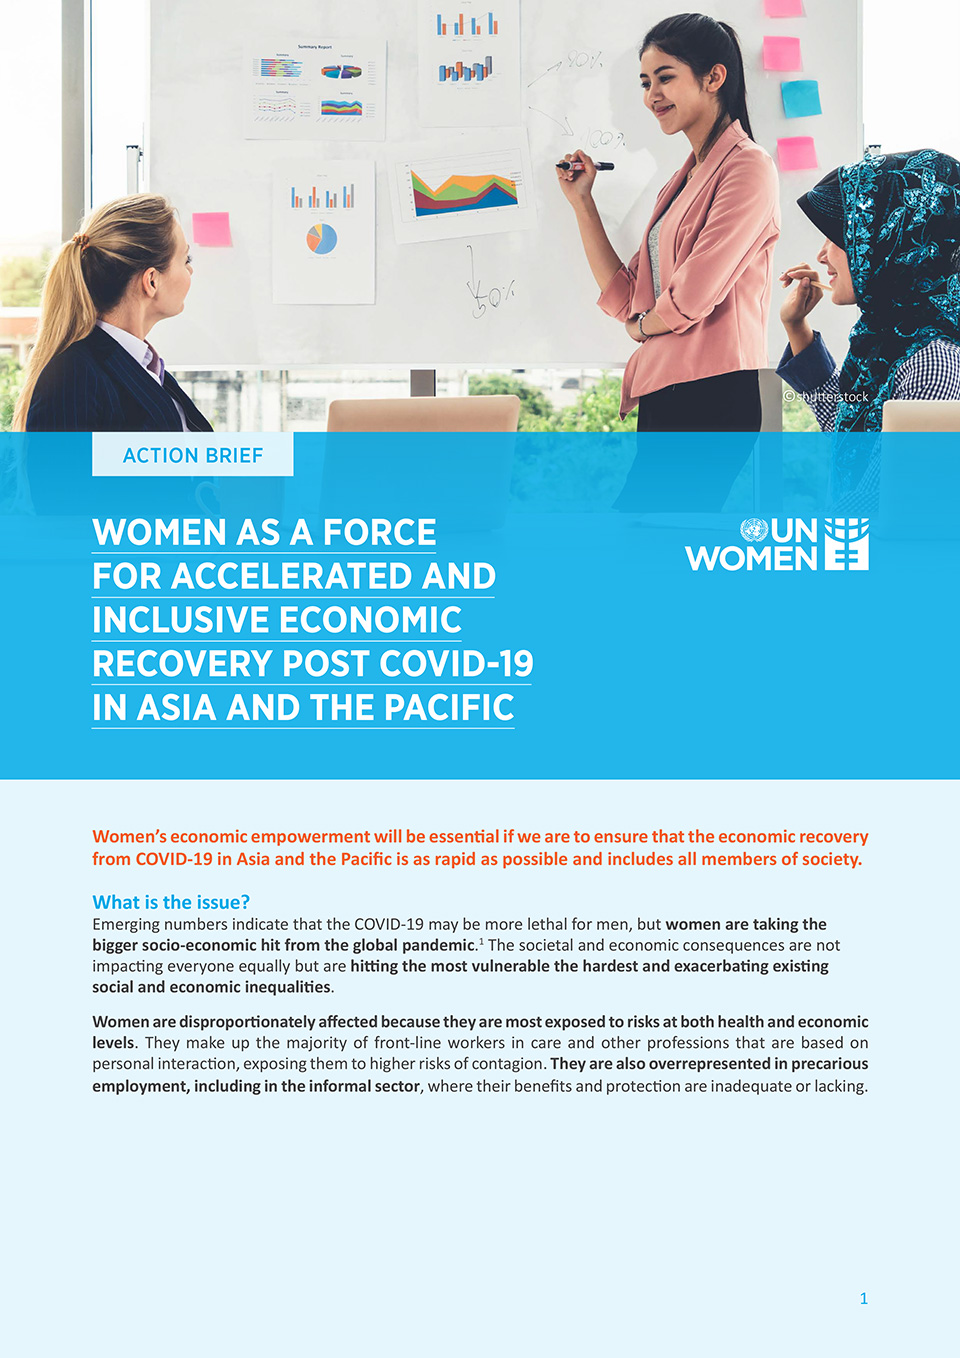 Women as a Force for Accelerated and Inclusive Economic Recovery Post-COVID-19 in Asia-Pacific